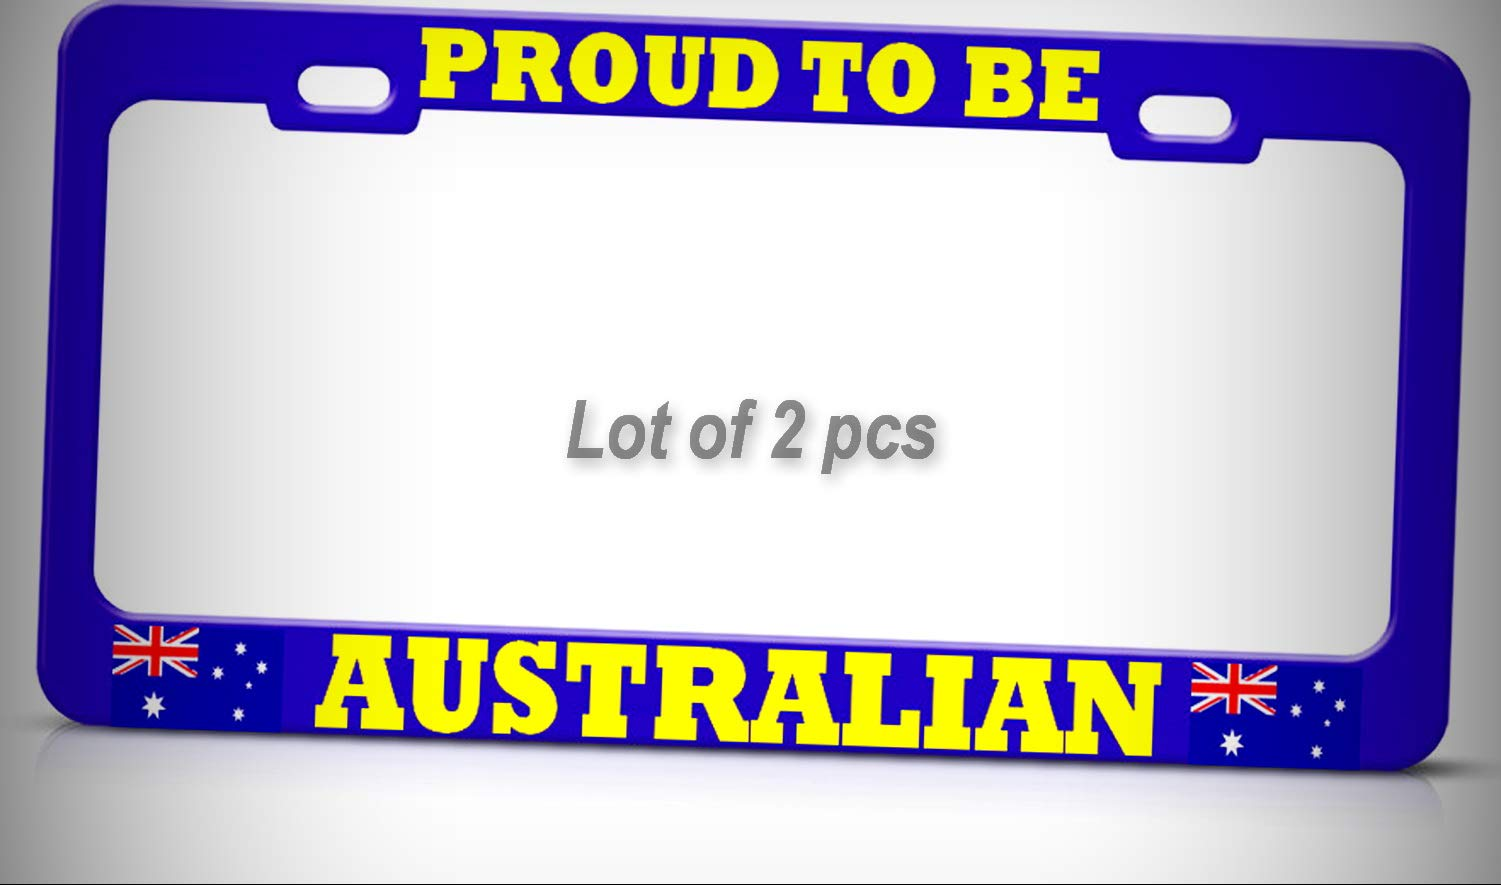 Set of 2 Pcs - Proud to BE Australian Blue Metal Tag Holder License Plate Frame Decorative Border AUTO SUV Tag